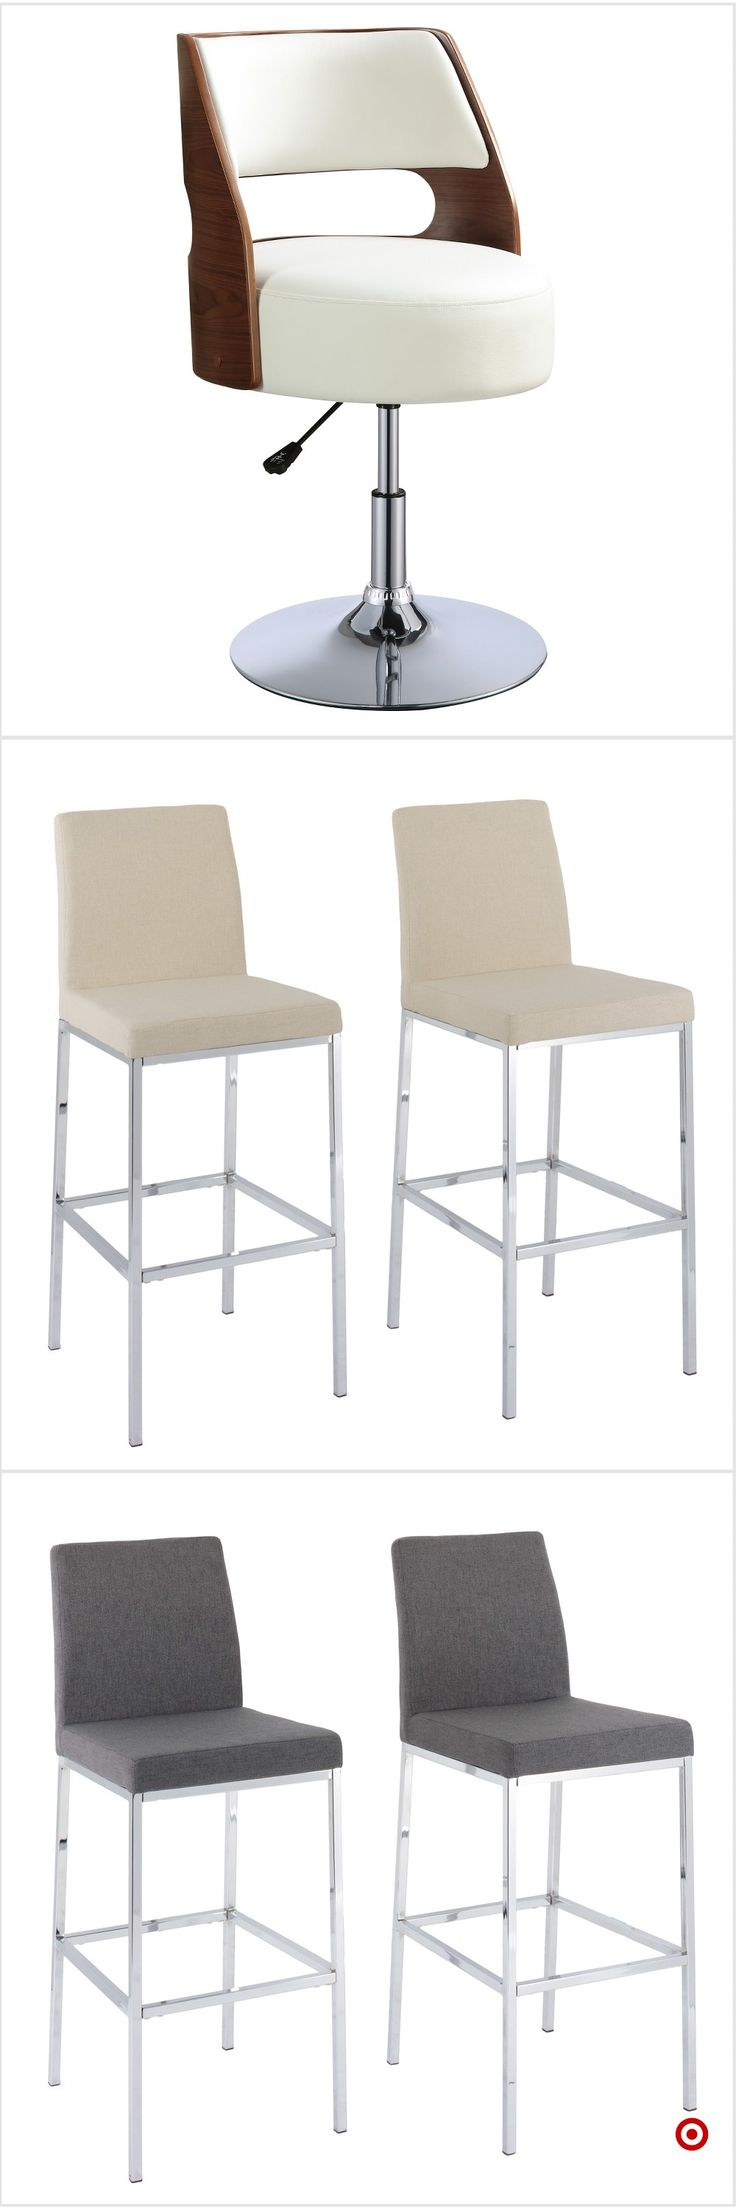 Shop Target for counter and bar stools you will love at great low prices. Free shipping on orders of $35+ or free same-day pick-up in store.